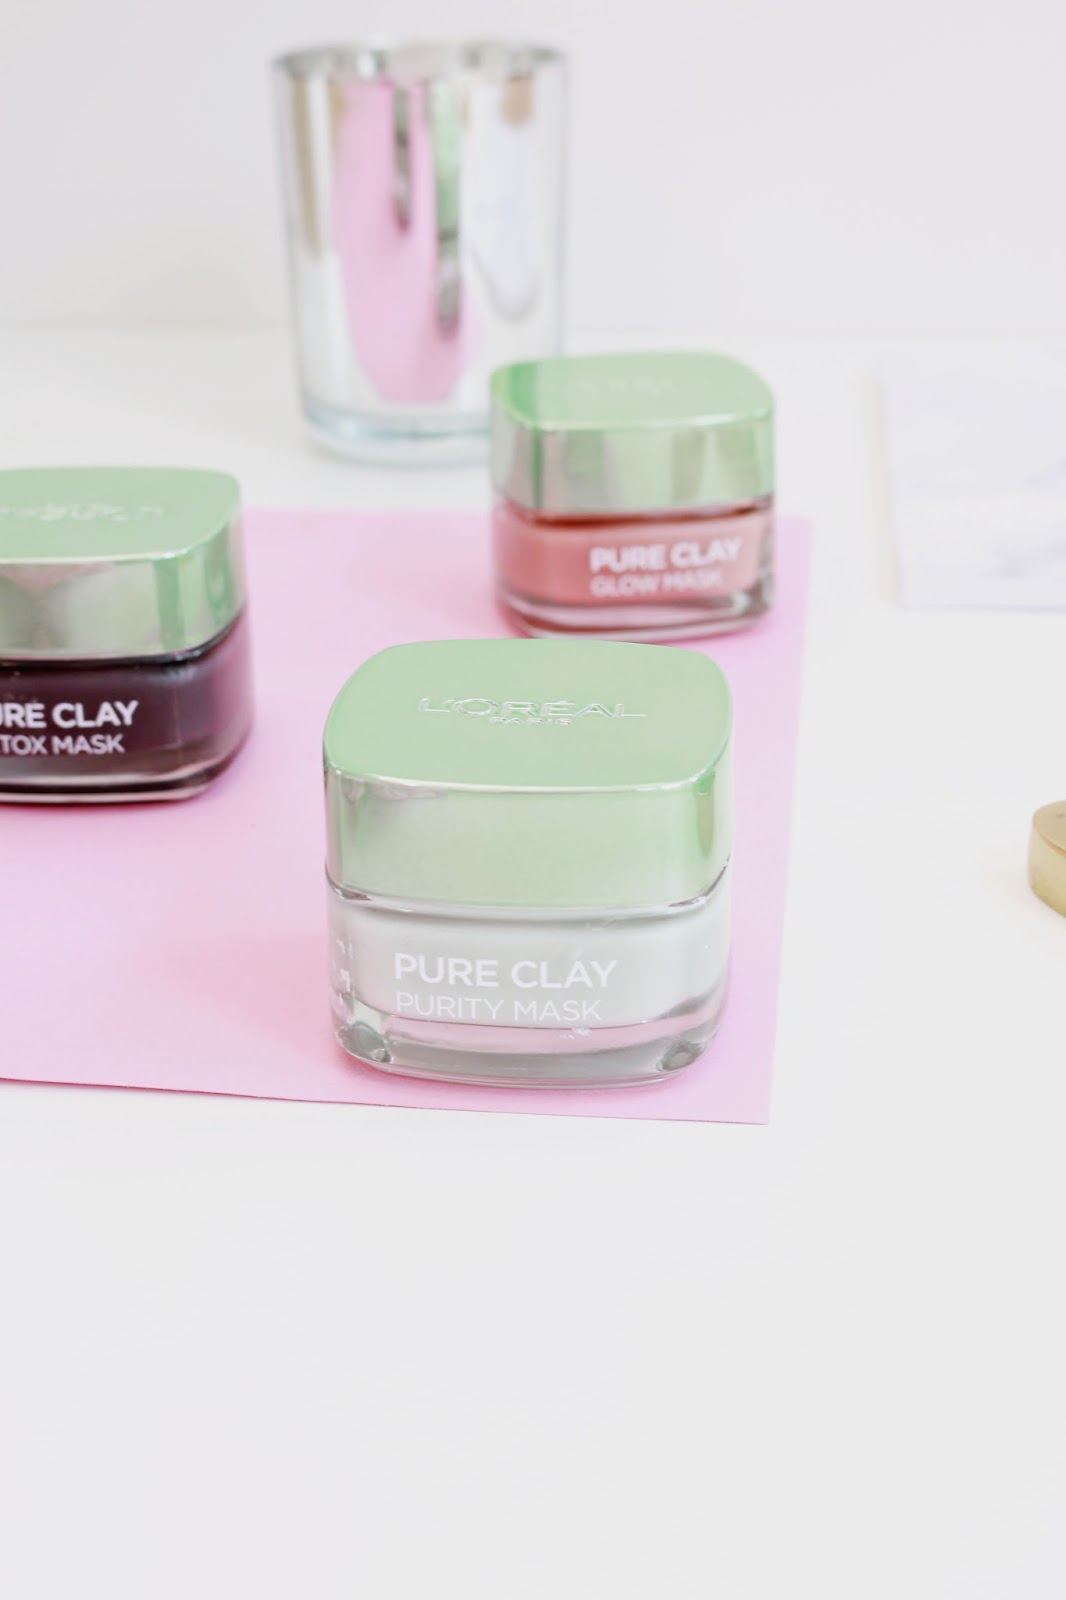 Beauty, Skincare, Face Masks, L'Oreal, L'Oreal clay masks, Multimasking, Drugstore,